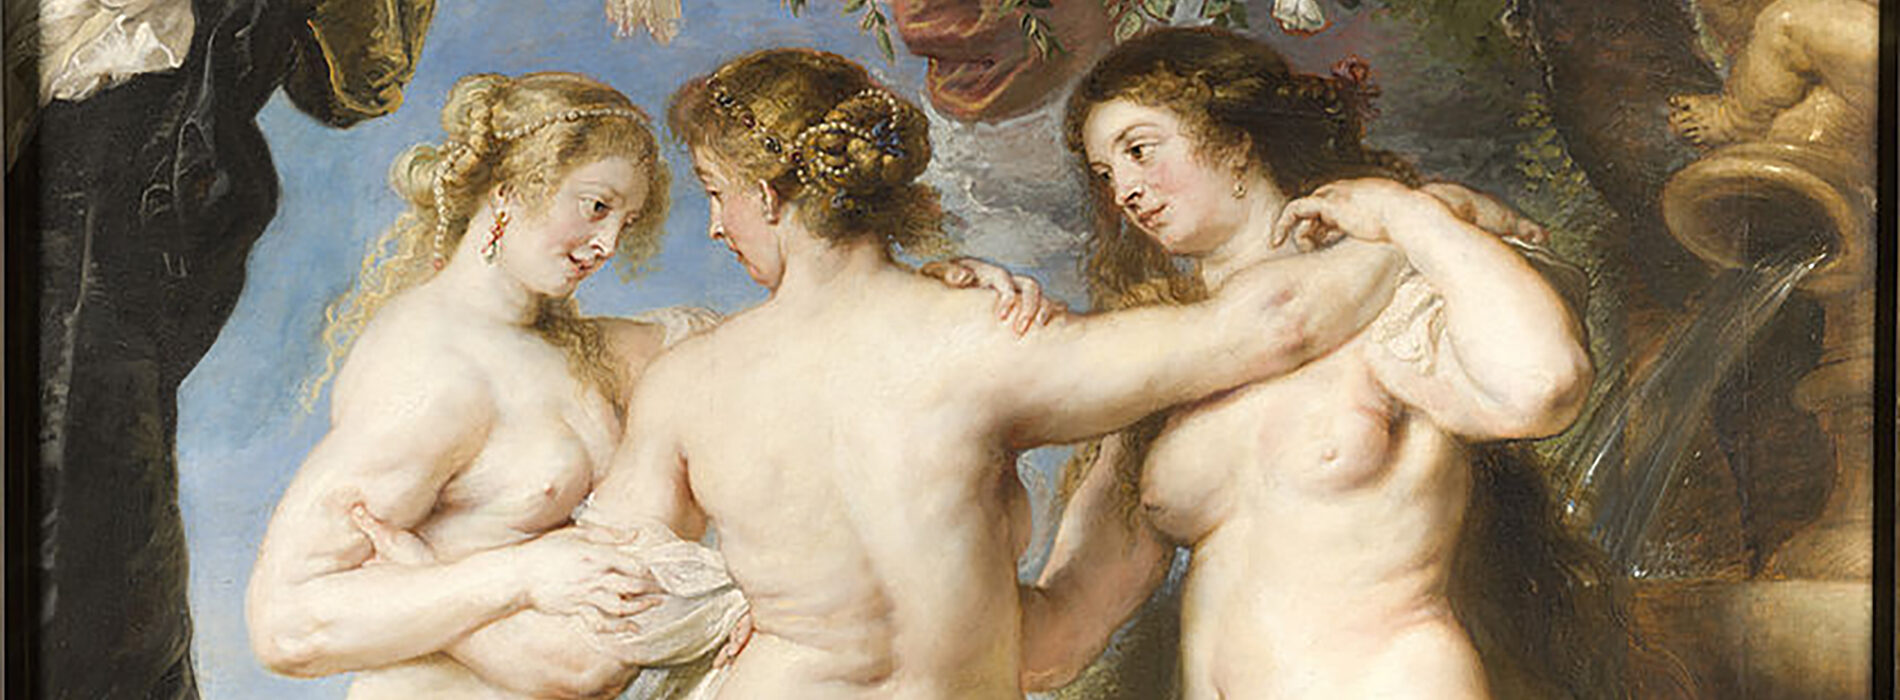 The Three Graces Prado Museum